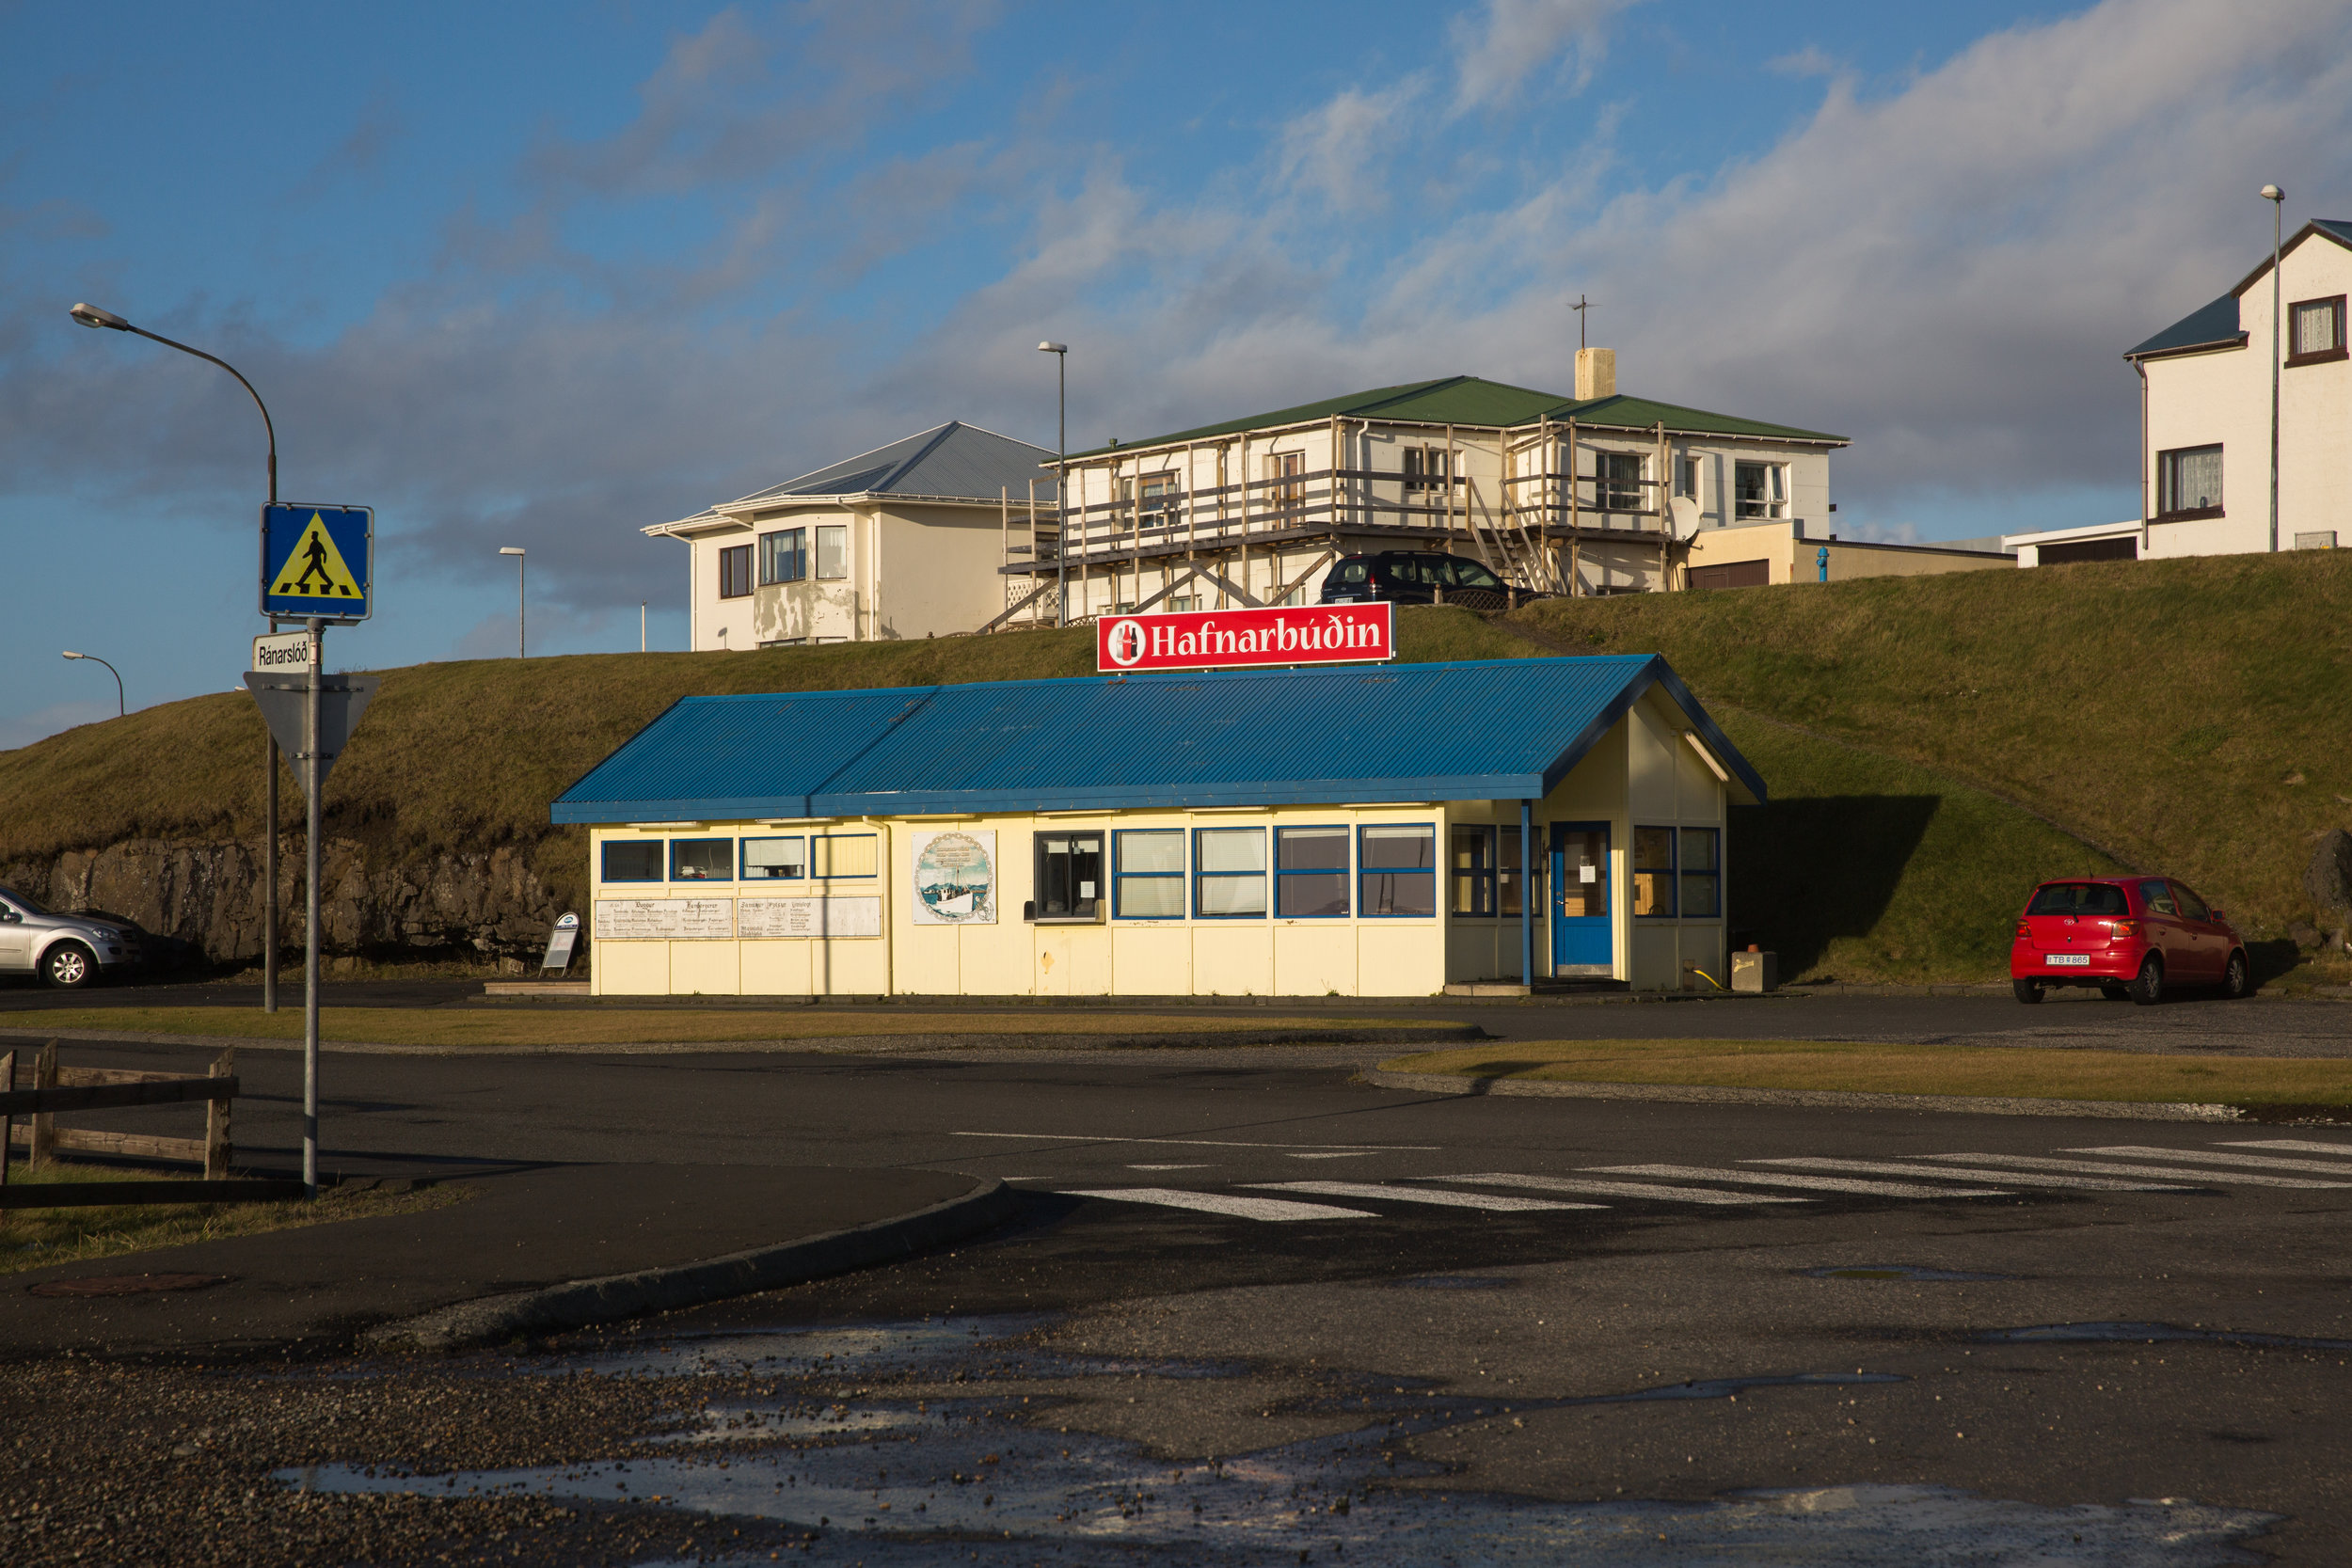 Hofn is also home to the best langoustine I had while in Iceland. They even have a drive through window.